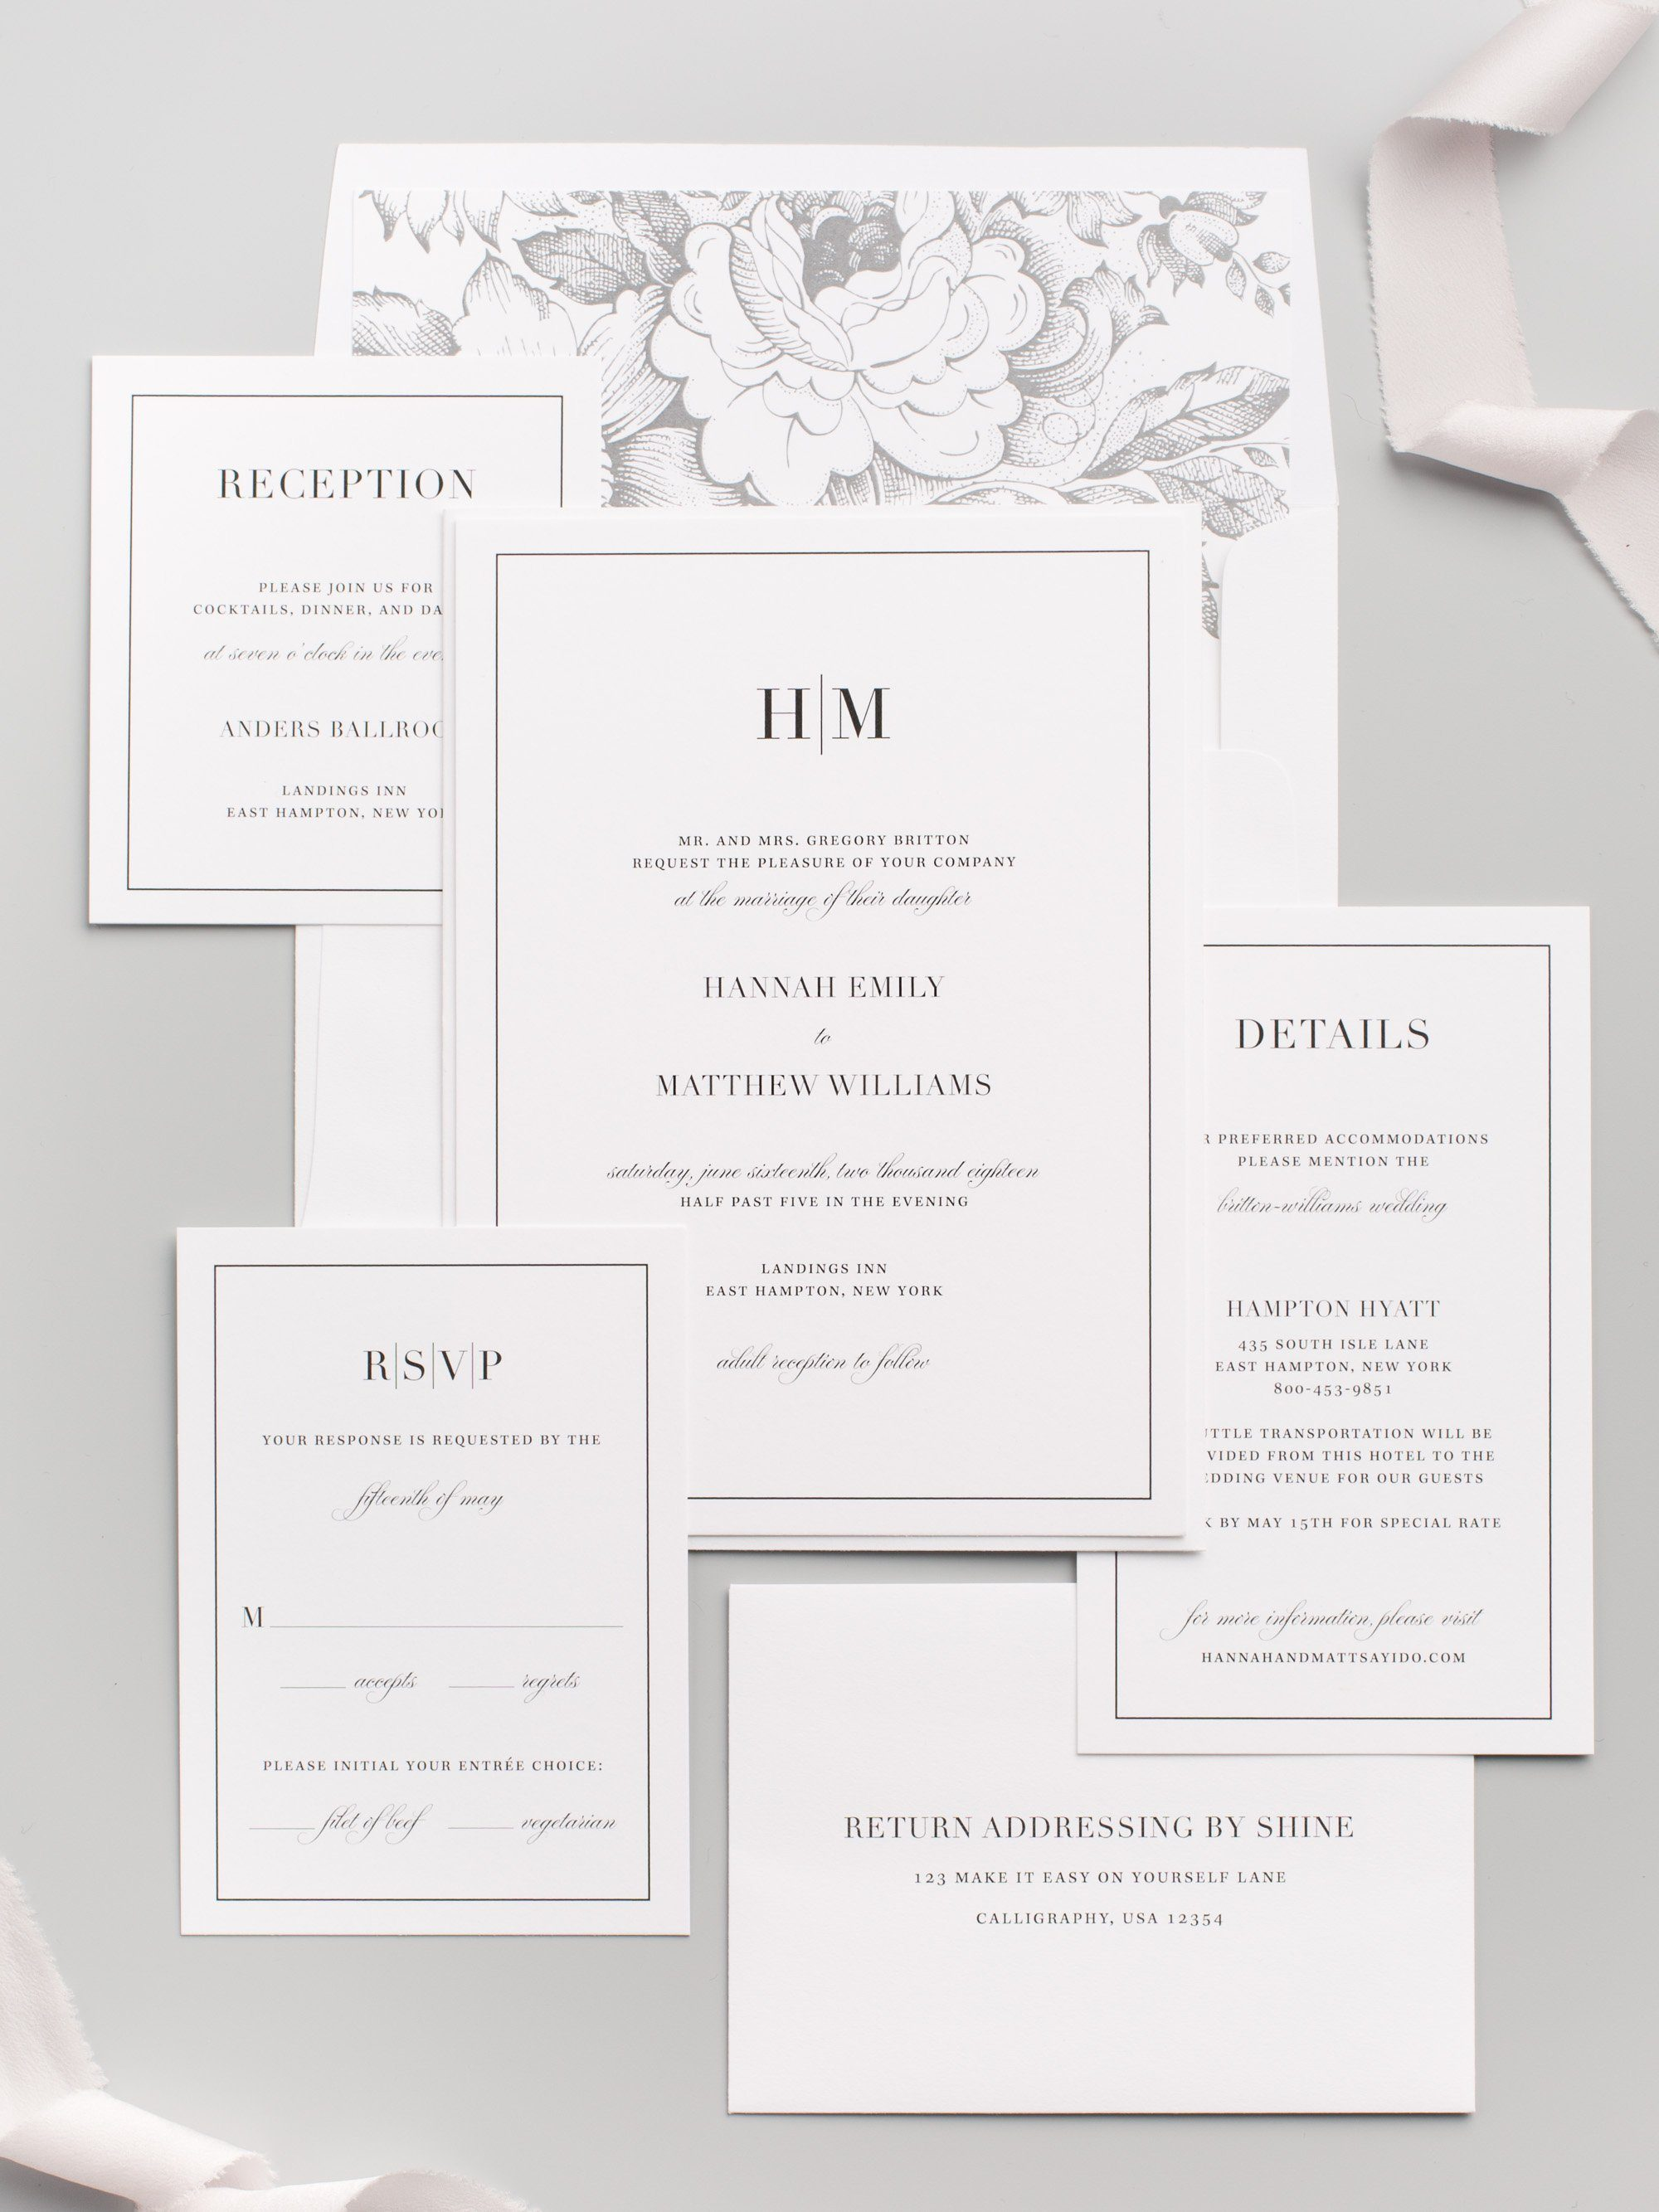 Glamorous and Modern Wedding Invitations with a Floral Envelope Liner